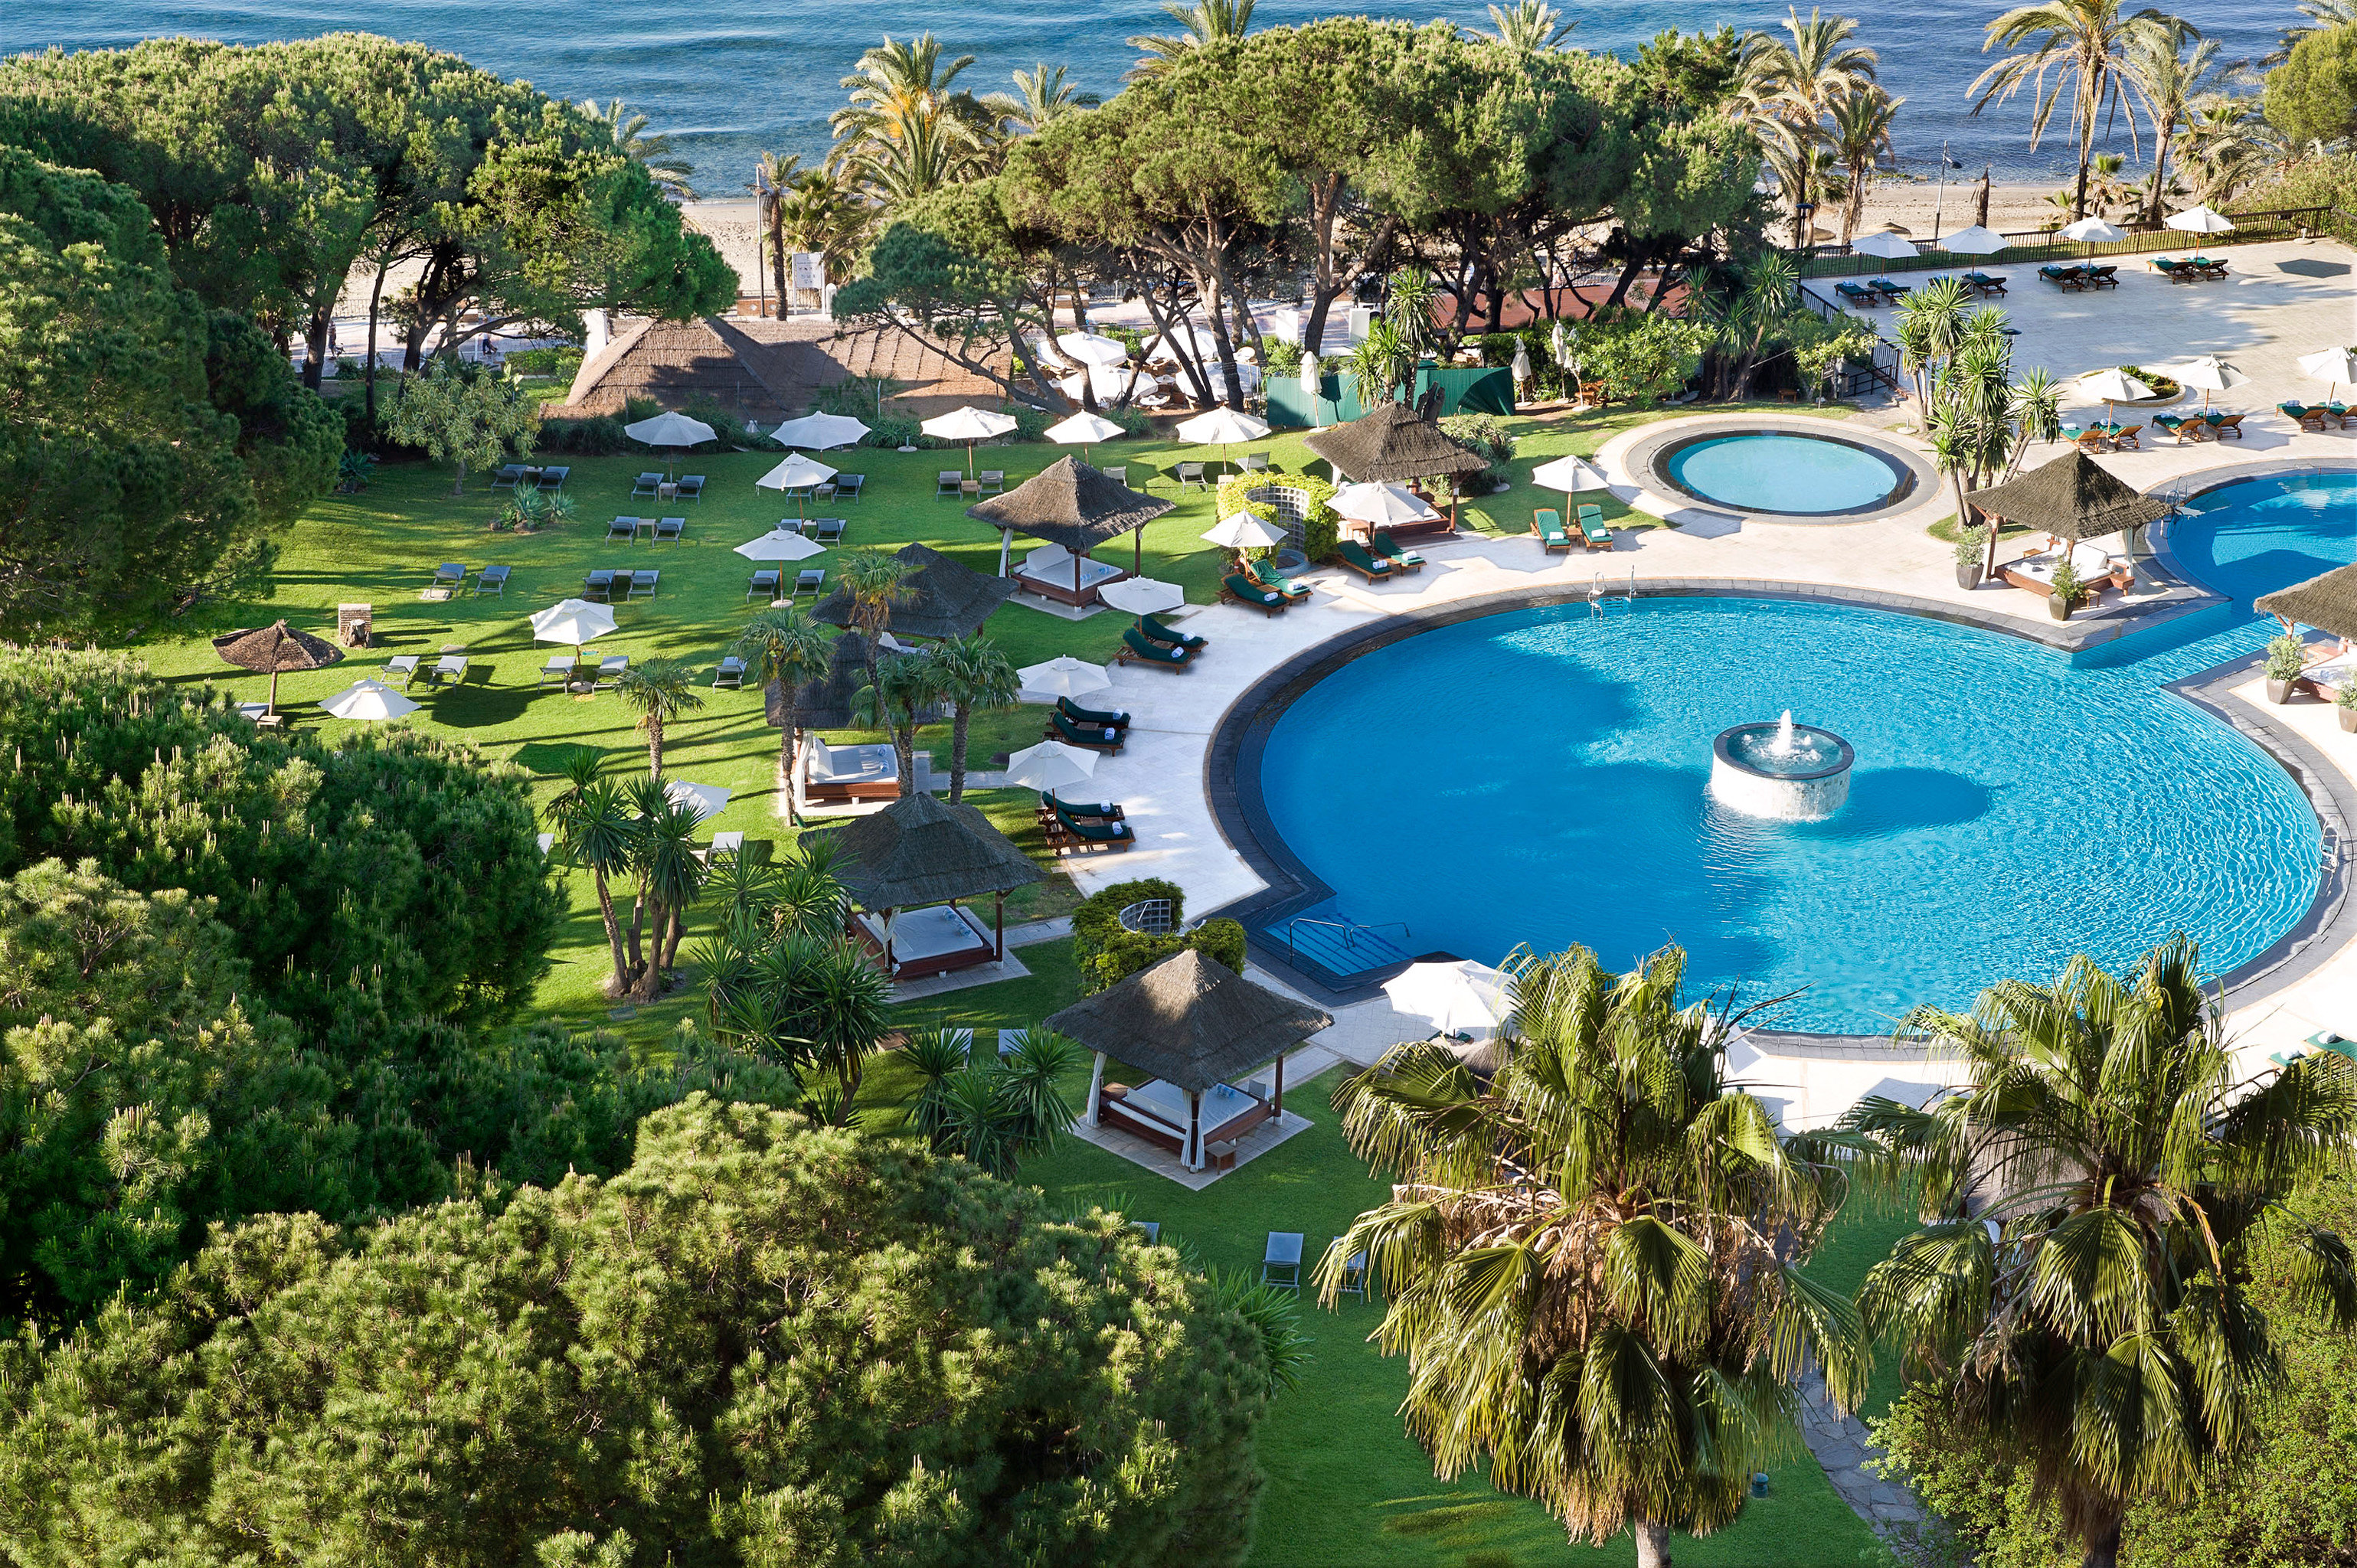 Beachfront Pool Resort Waterfront tree water swimming pool leisure property reef resort town mansion Water park lawn park overlooking Garden lined day